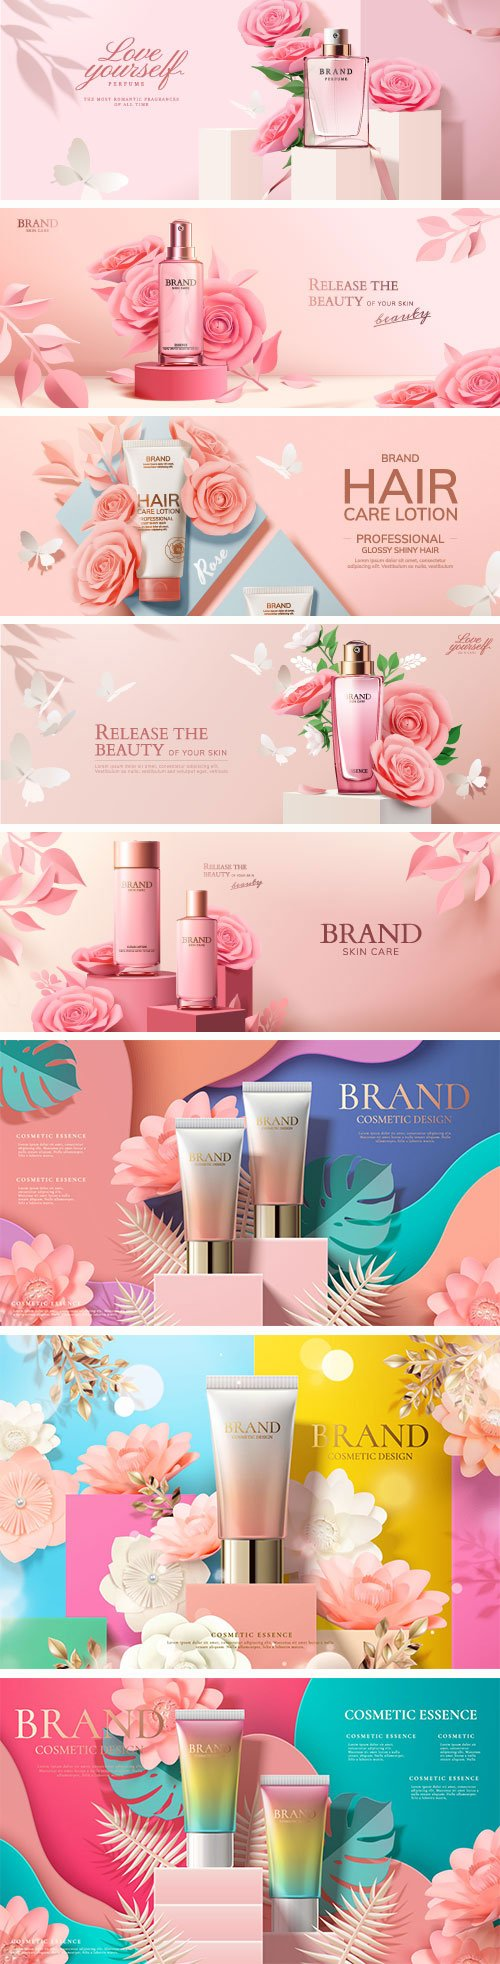 Brand cosmetic design, foundation banner ads # 7